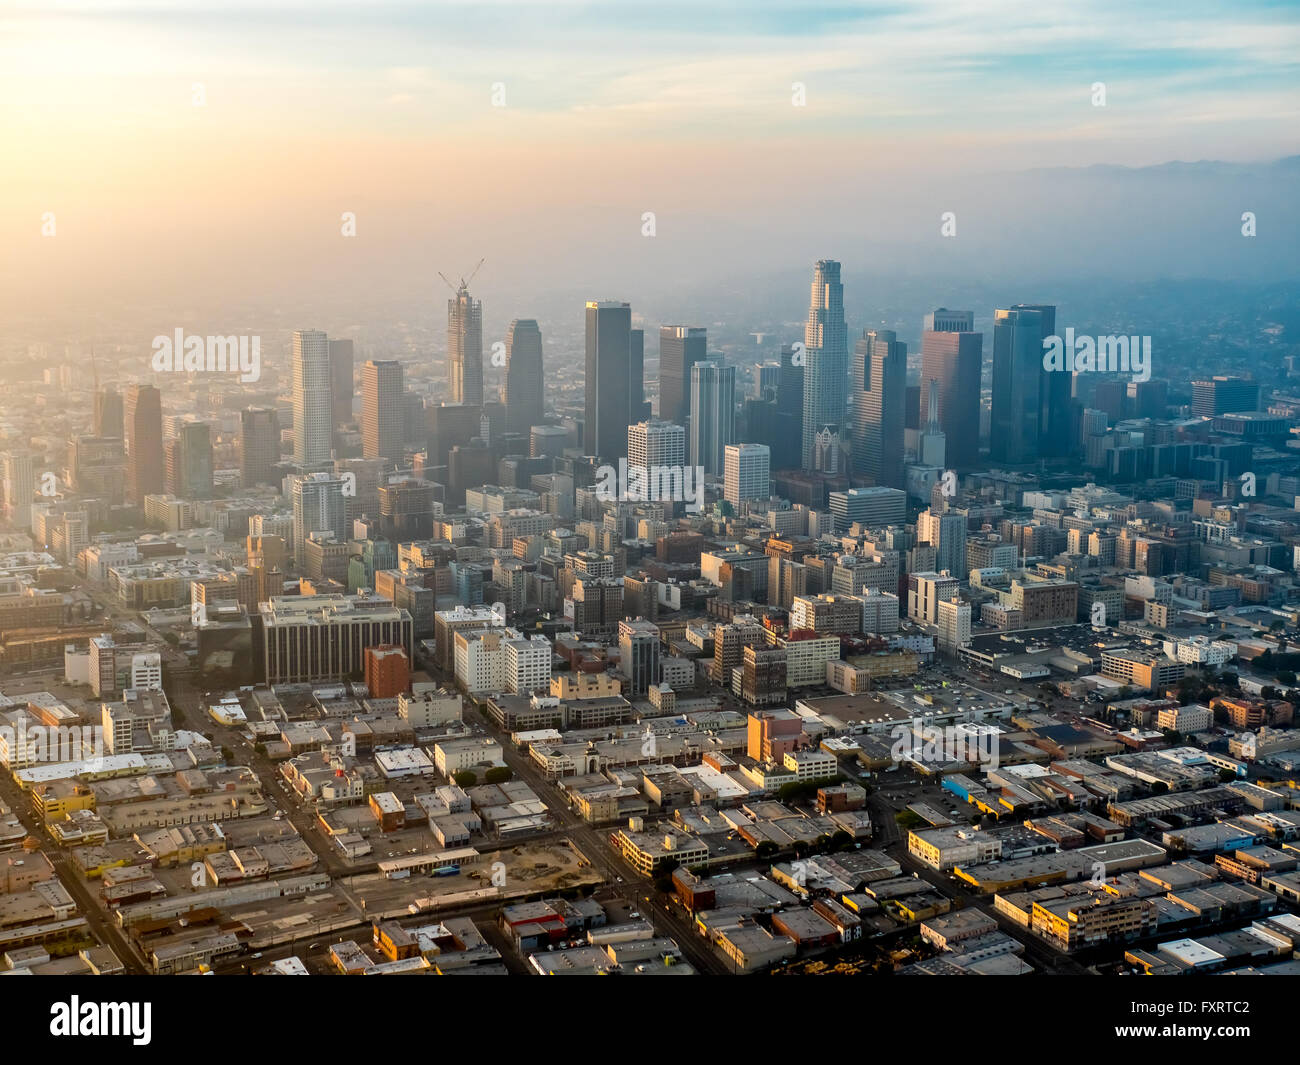 Aerial view, skyscrapers of downtown Los Angeles in the haze, smog, Los Angeles, Los Angeles County, California, - Stock Image